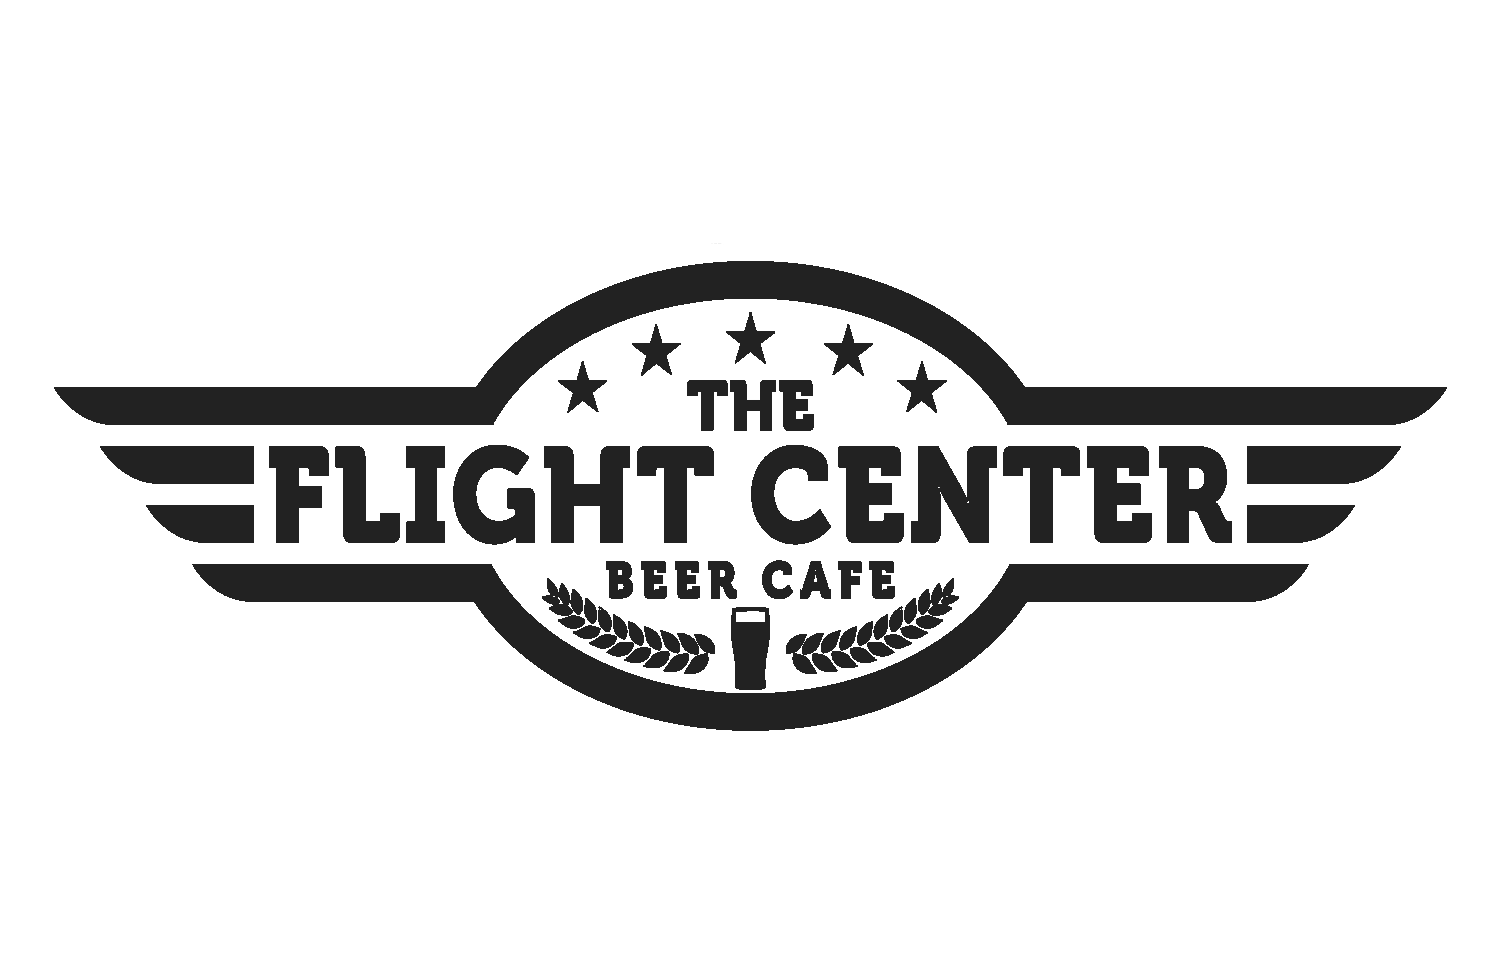 fuot flight-center.png